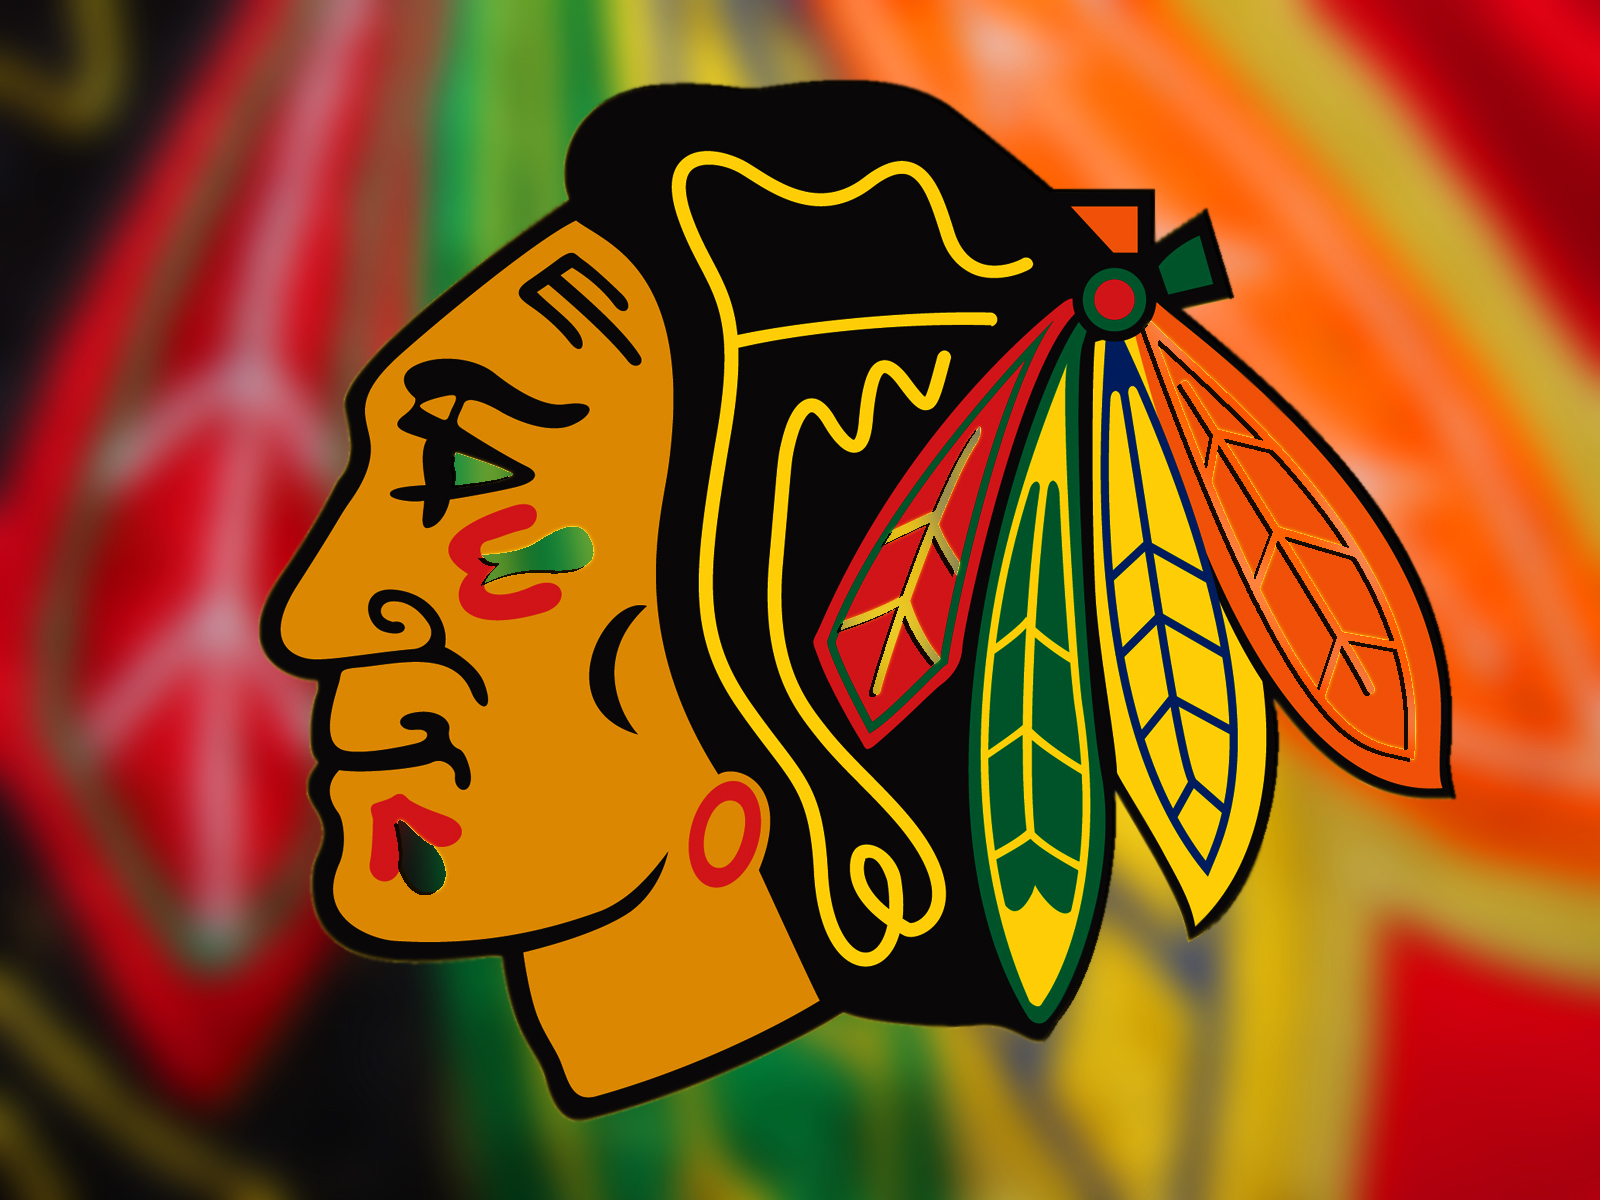 nhl team wallpaper share this awesome nhl hockey wallpaper on facebook 1600x1200